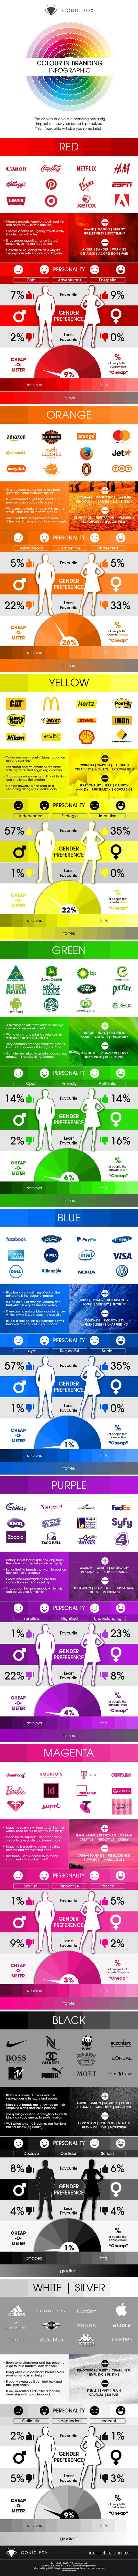 The Role of Color in Brand Identity #infographic